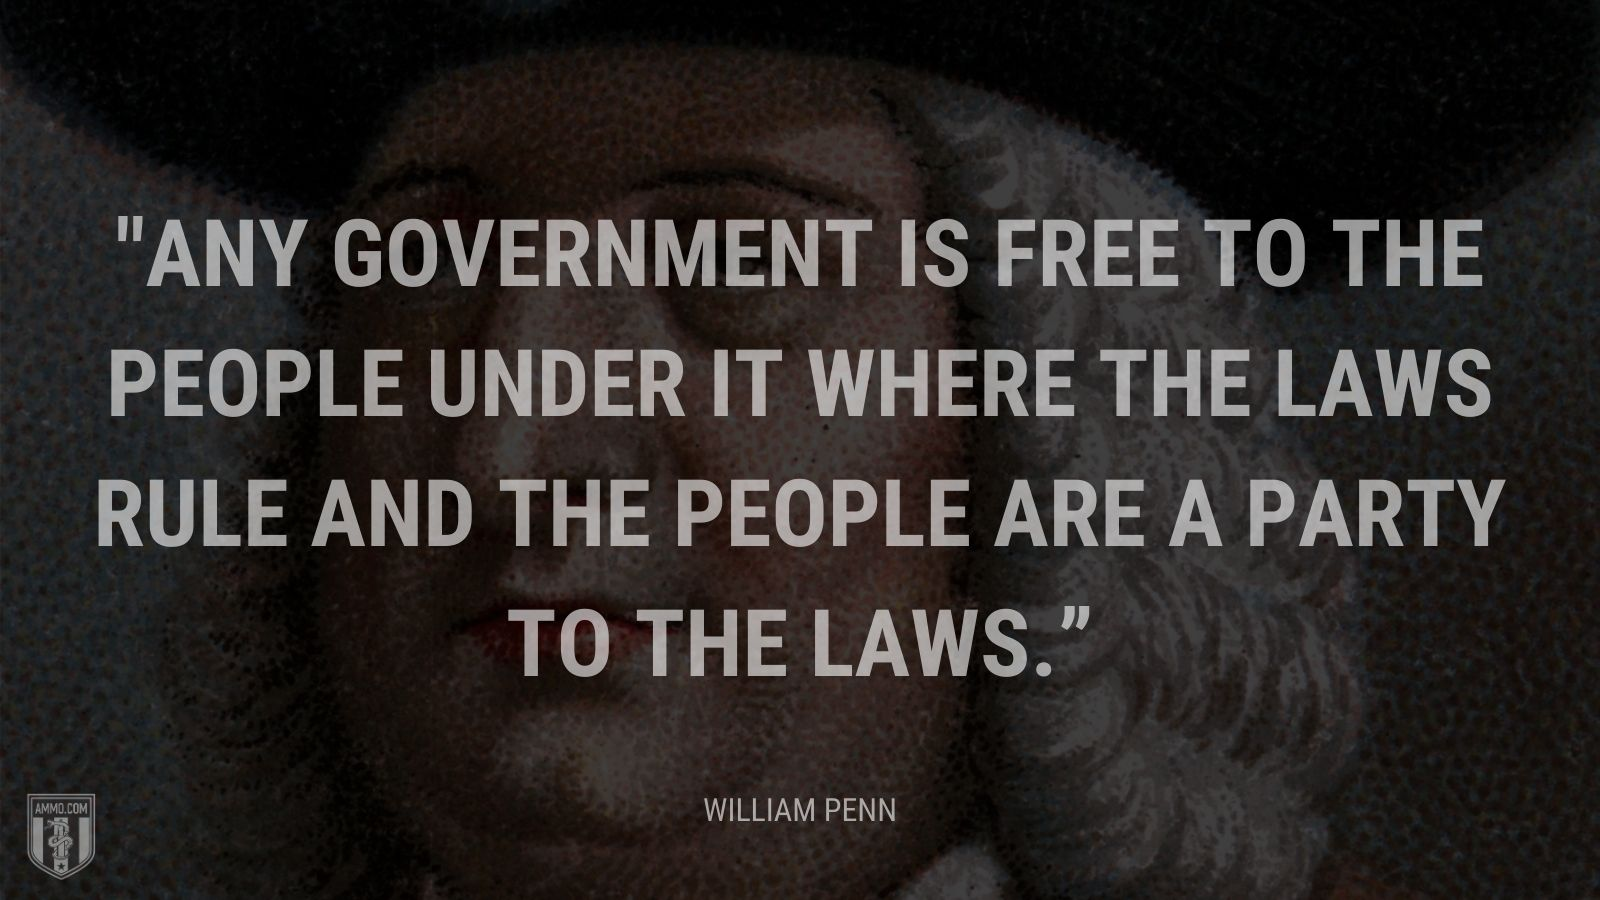 """Any government is free to the people under it where the laws rule and the people are a party to the laws."" - William Penn"